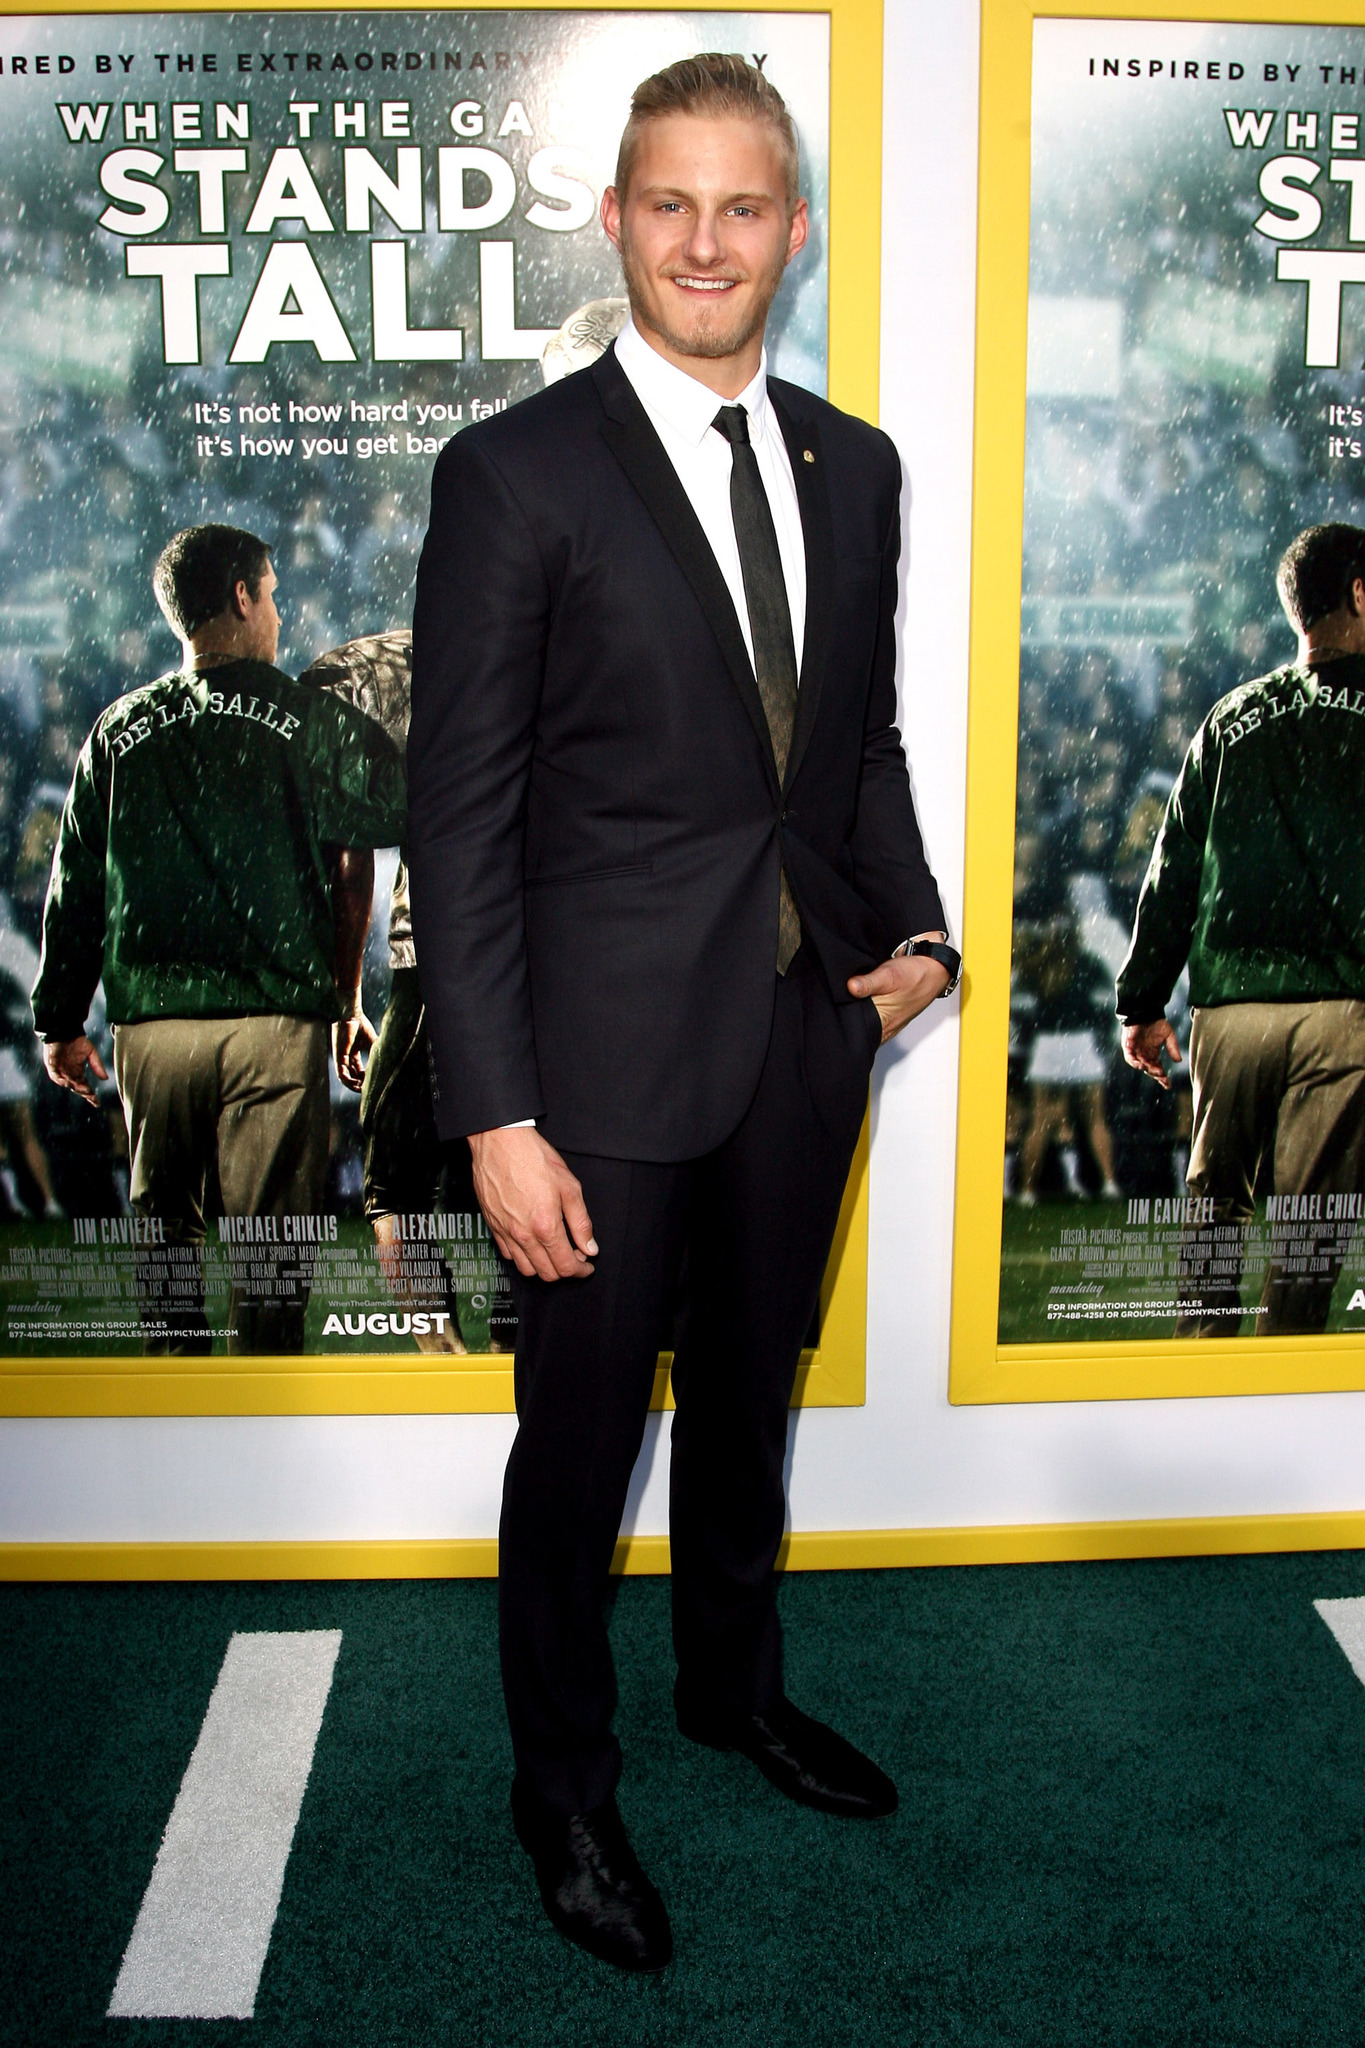 Alexander Ludwig at an event for When the Game Stands Tall (2014)